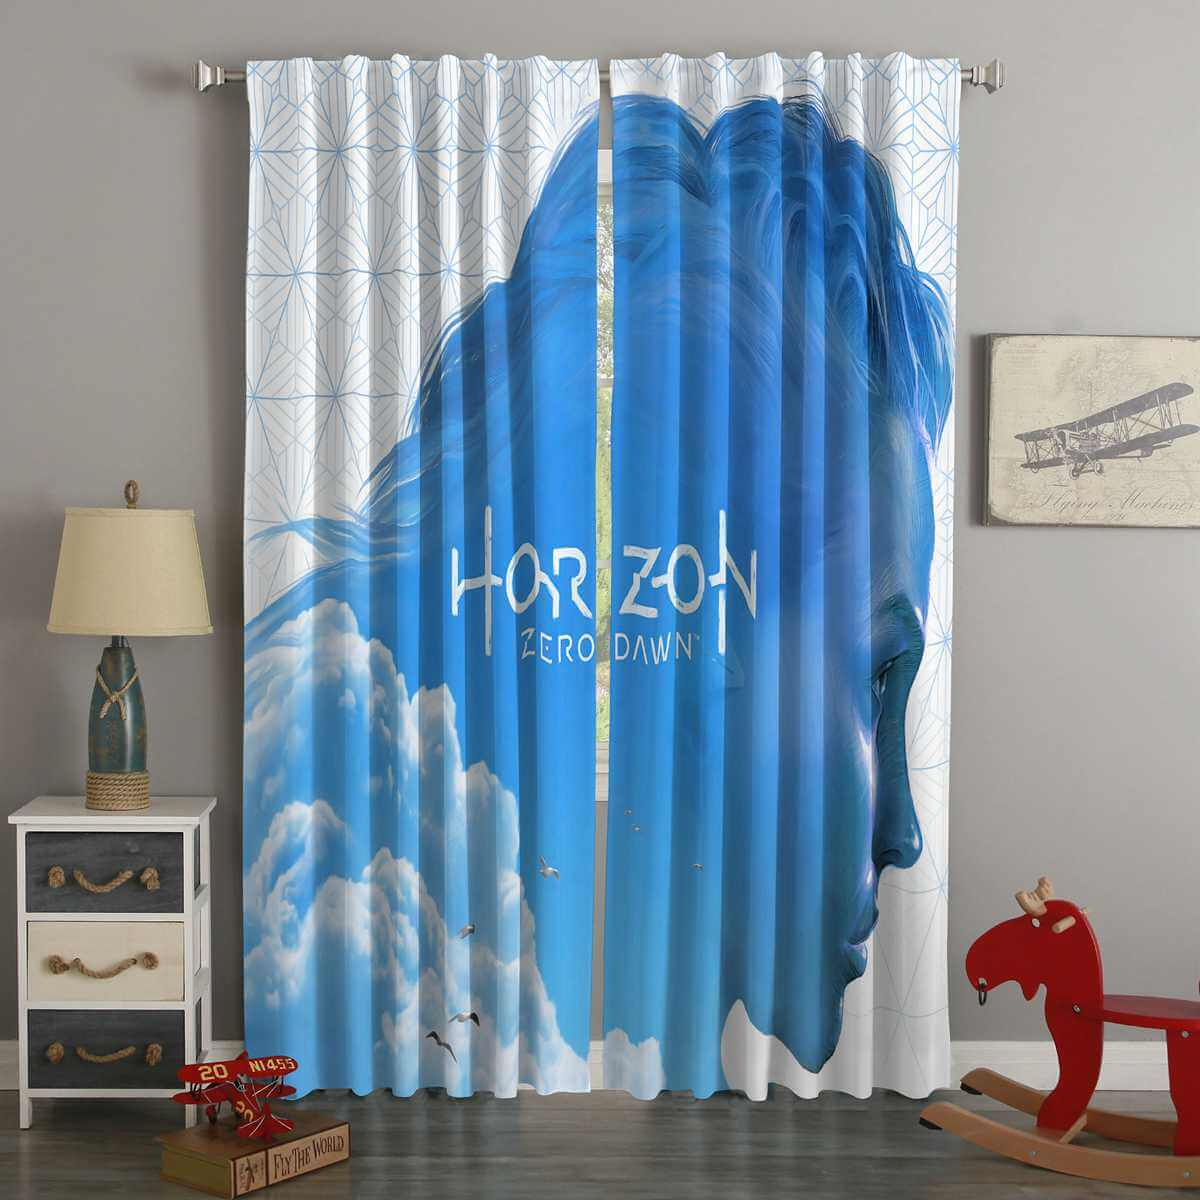 3D Printed Horizon Zero Dawn Style Custom Living Room Curtains